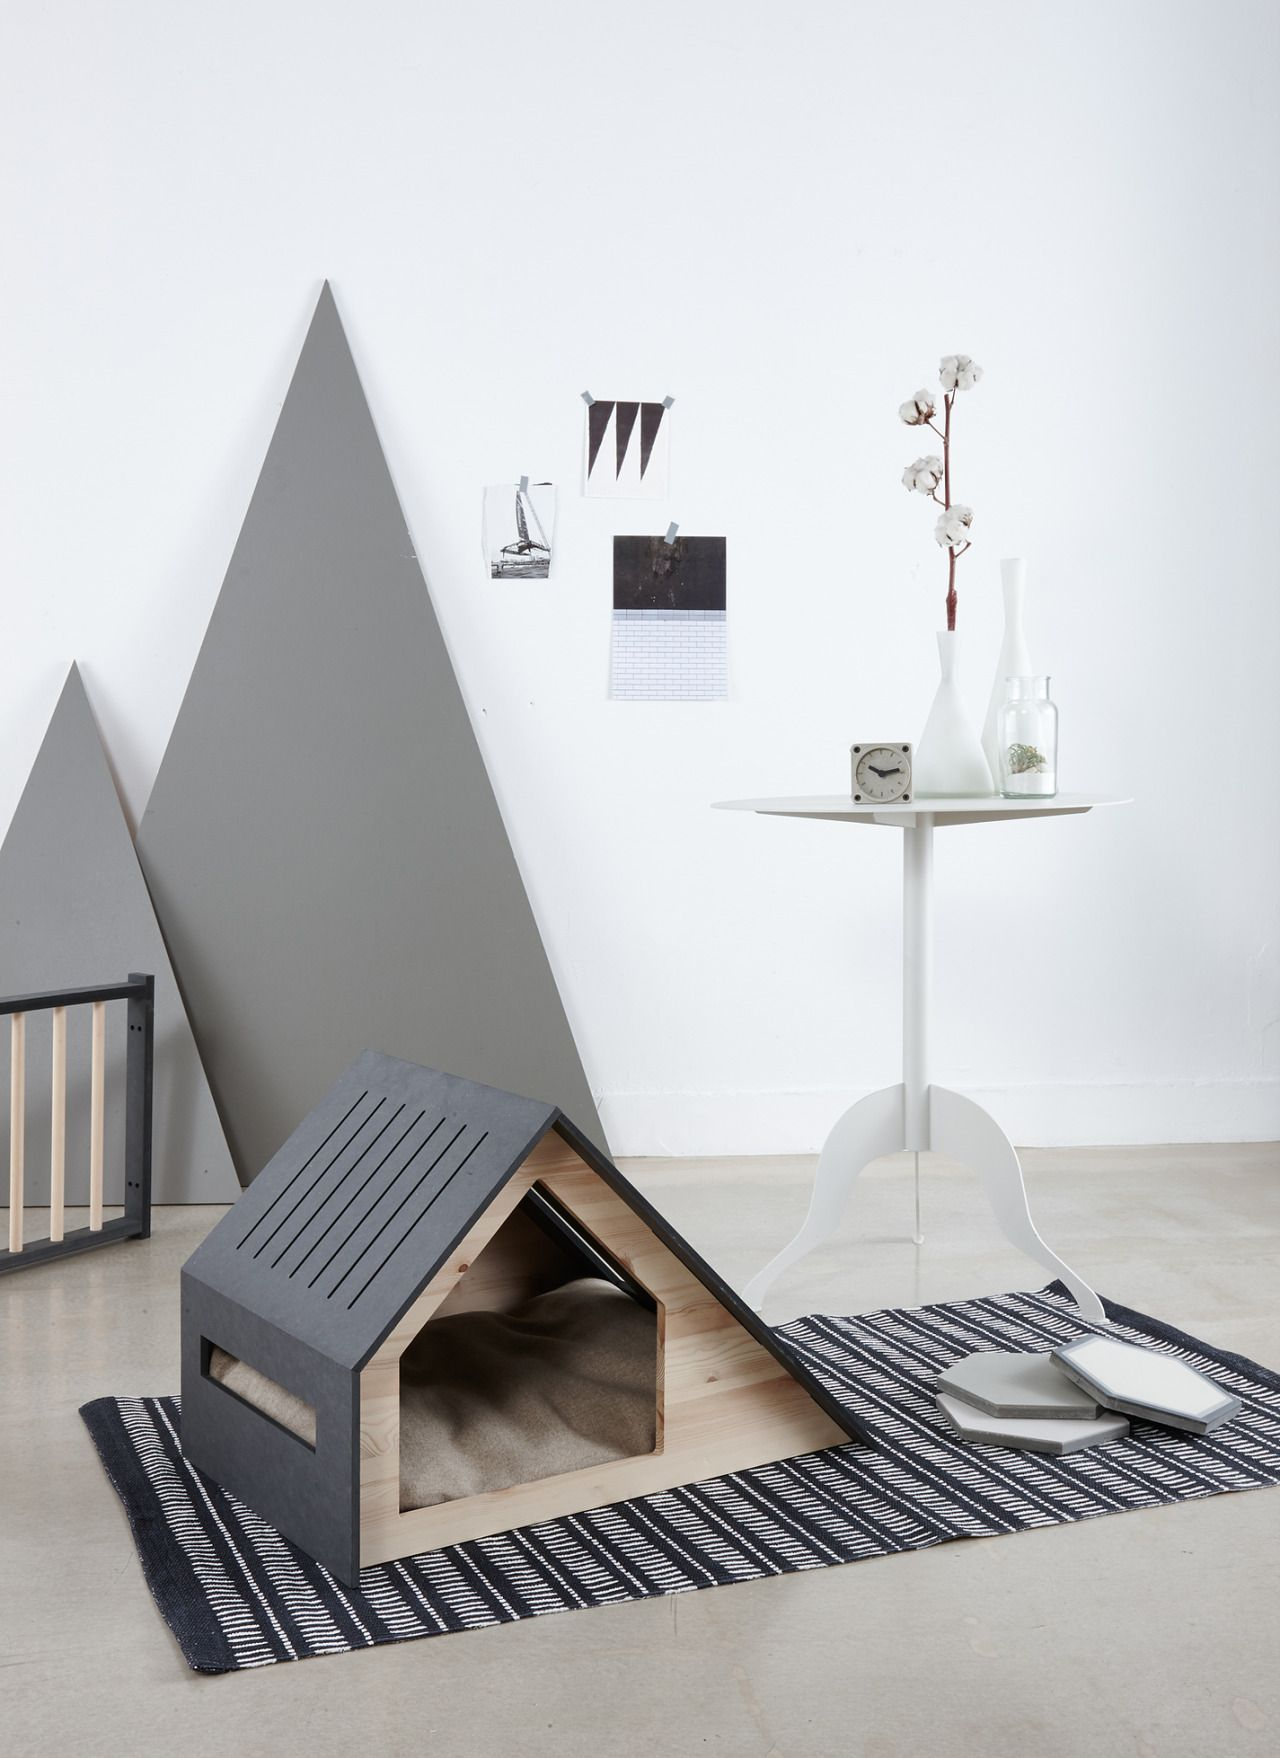 The deauville dog house by korean brand bad marlon dog houses